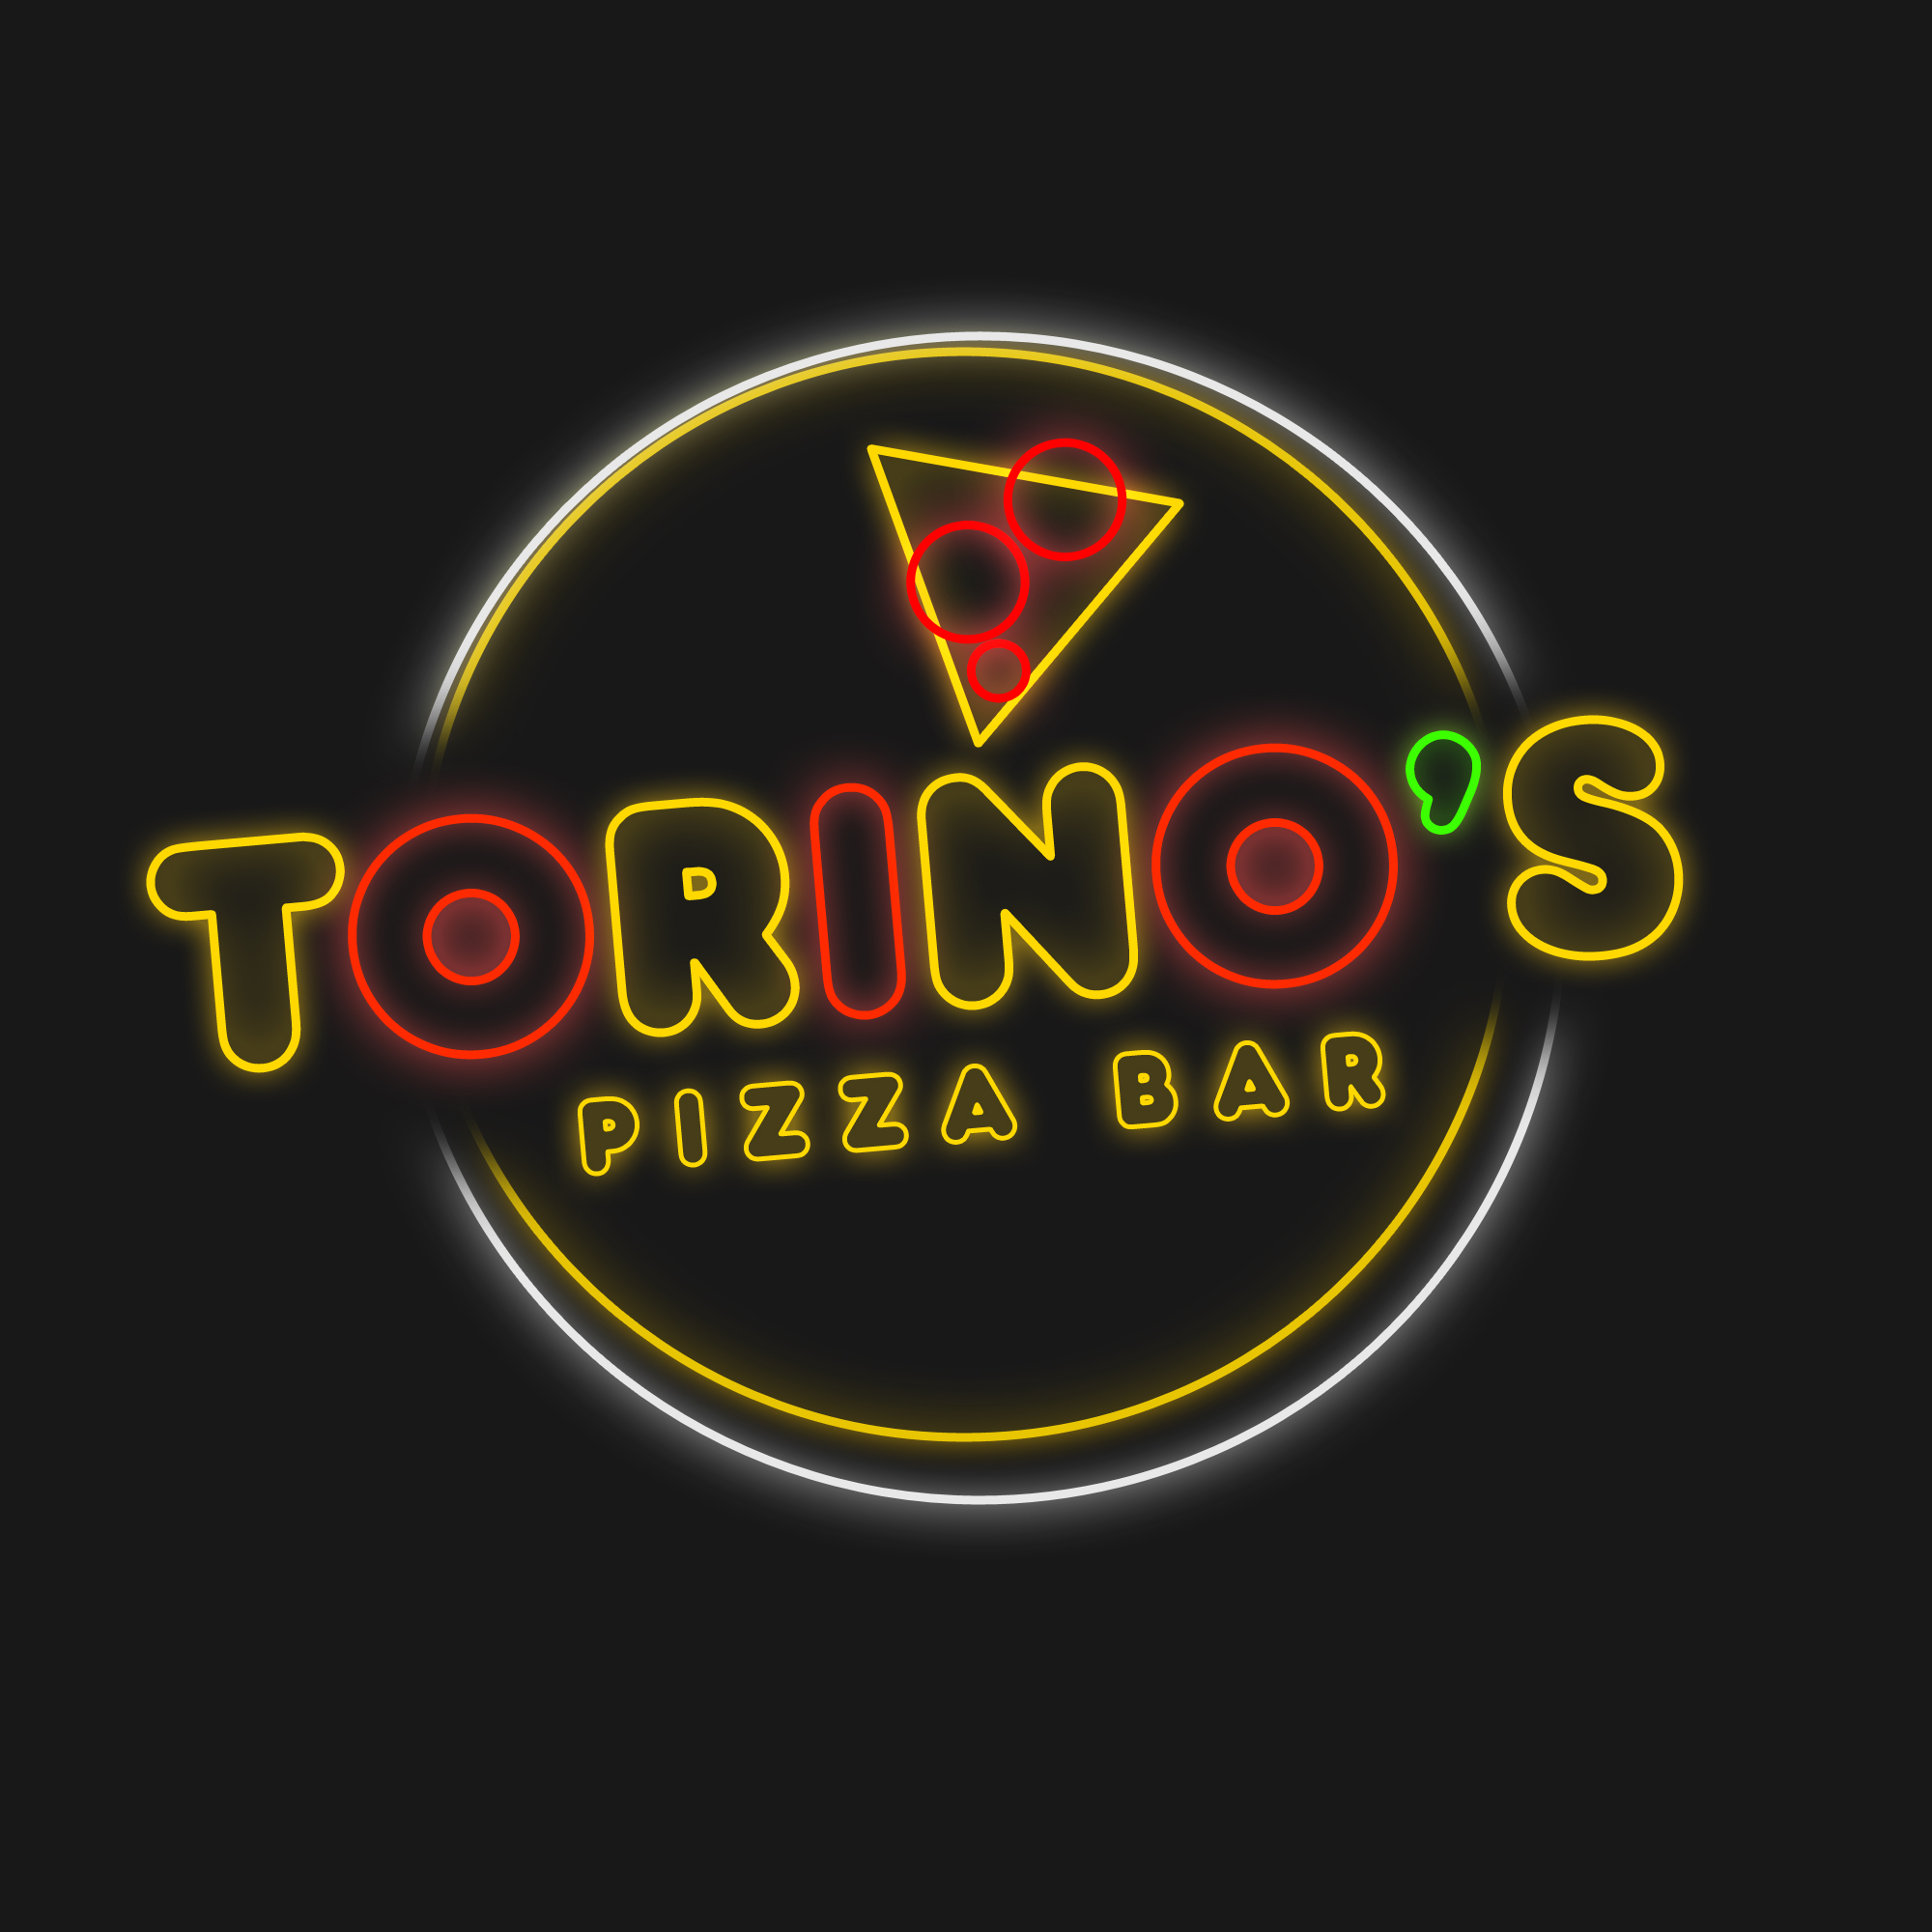 Custom Design by Kenneth Joel - Entry No. 1 in the Custom Design Contest Torino's Pizza Bar Custom Design.